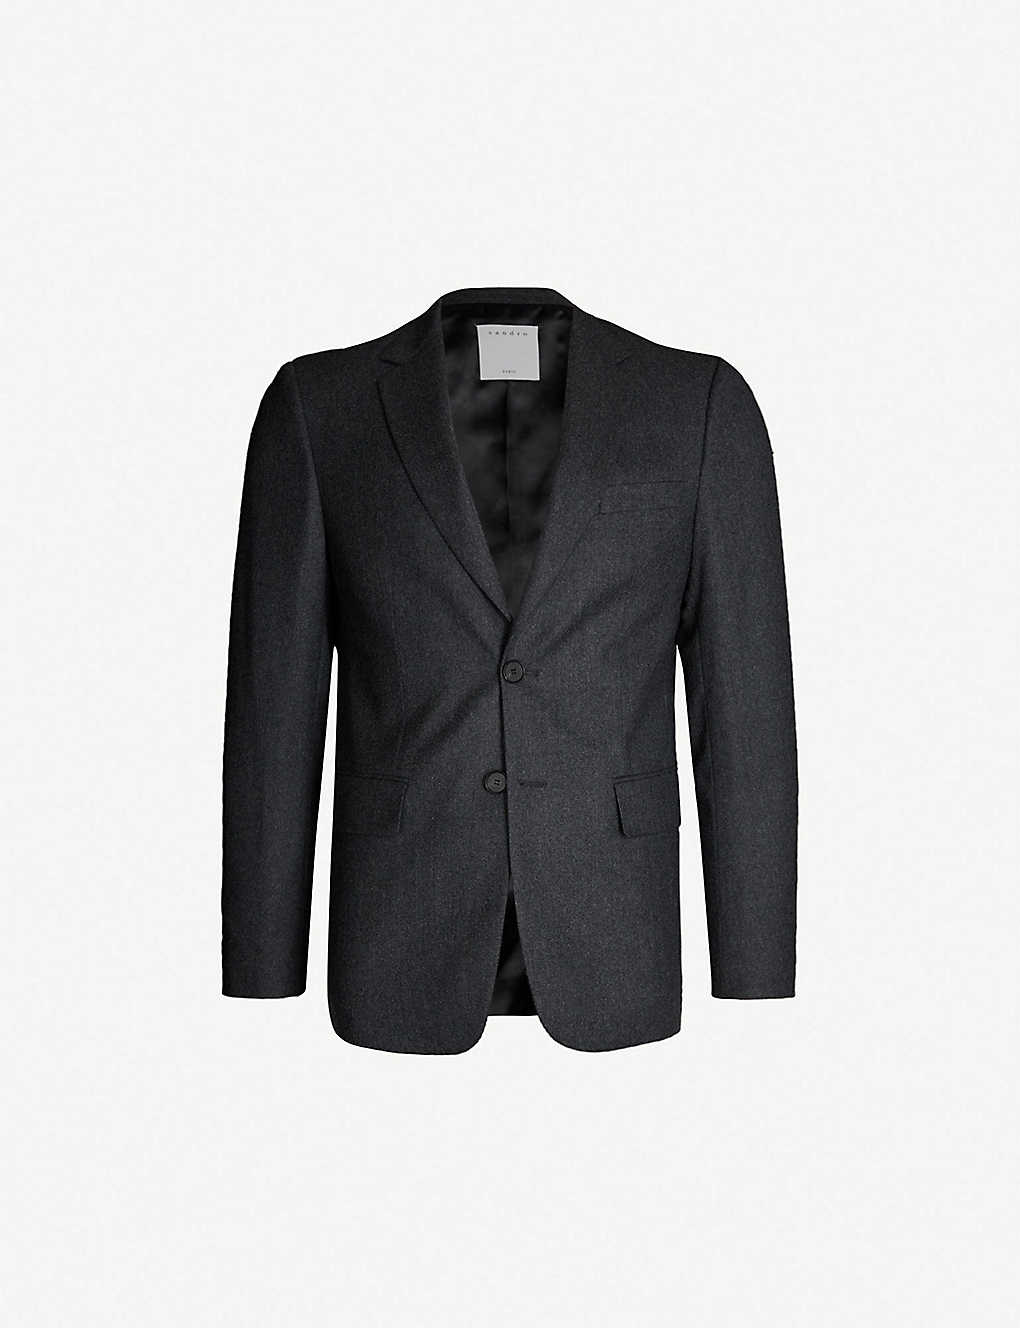 0ad6d65a19 SANDRO - Single-breasted wool blazer